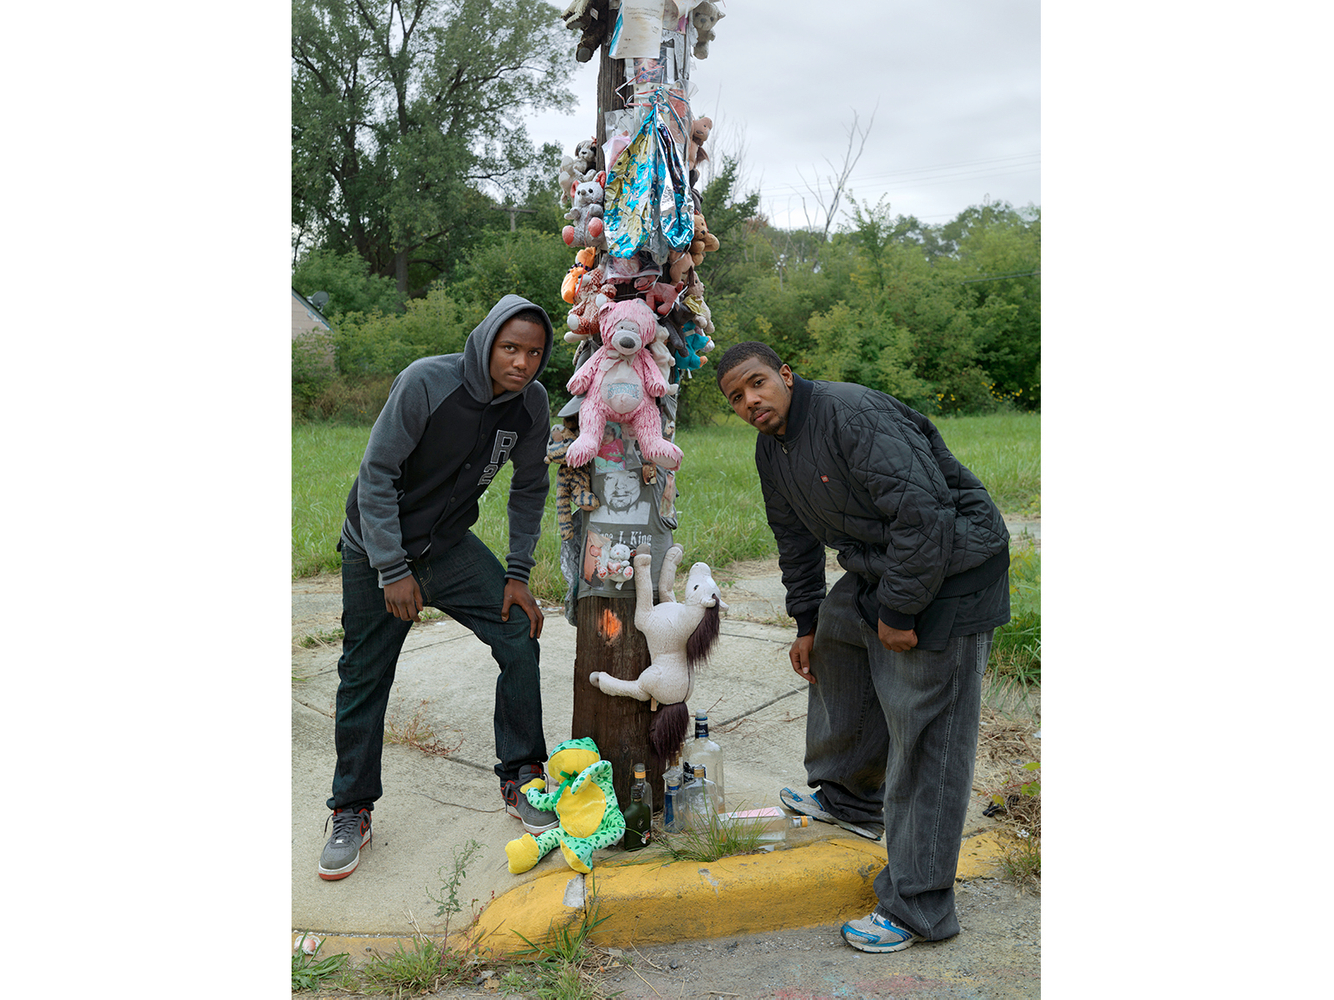 Two Men Pose in Front of a Memorial for their Deceased Friend, Eastside, Detroit 2014